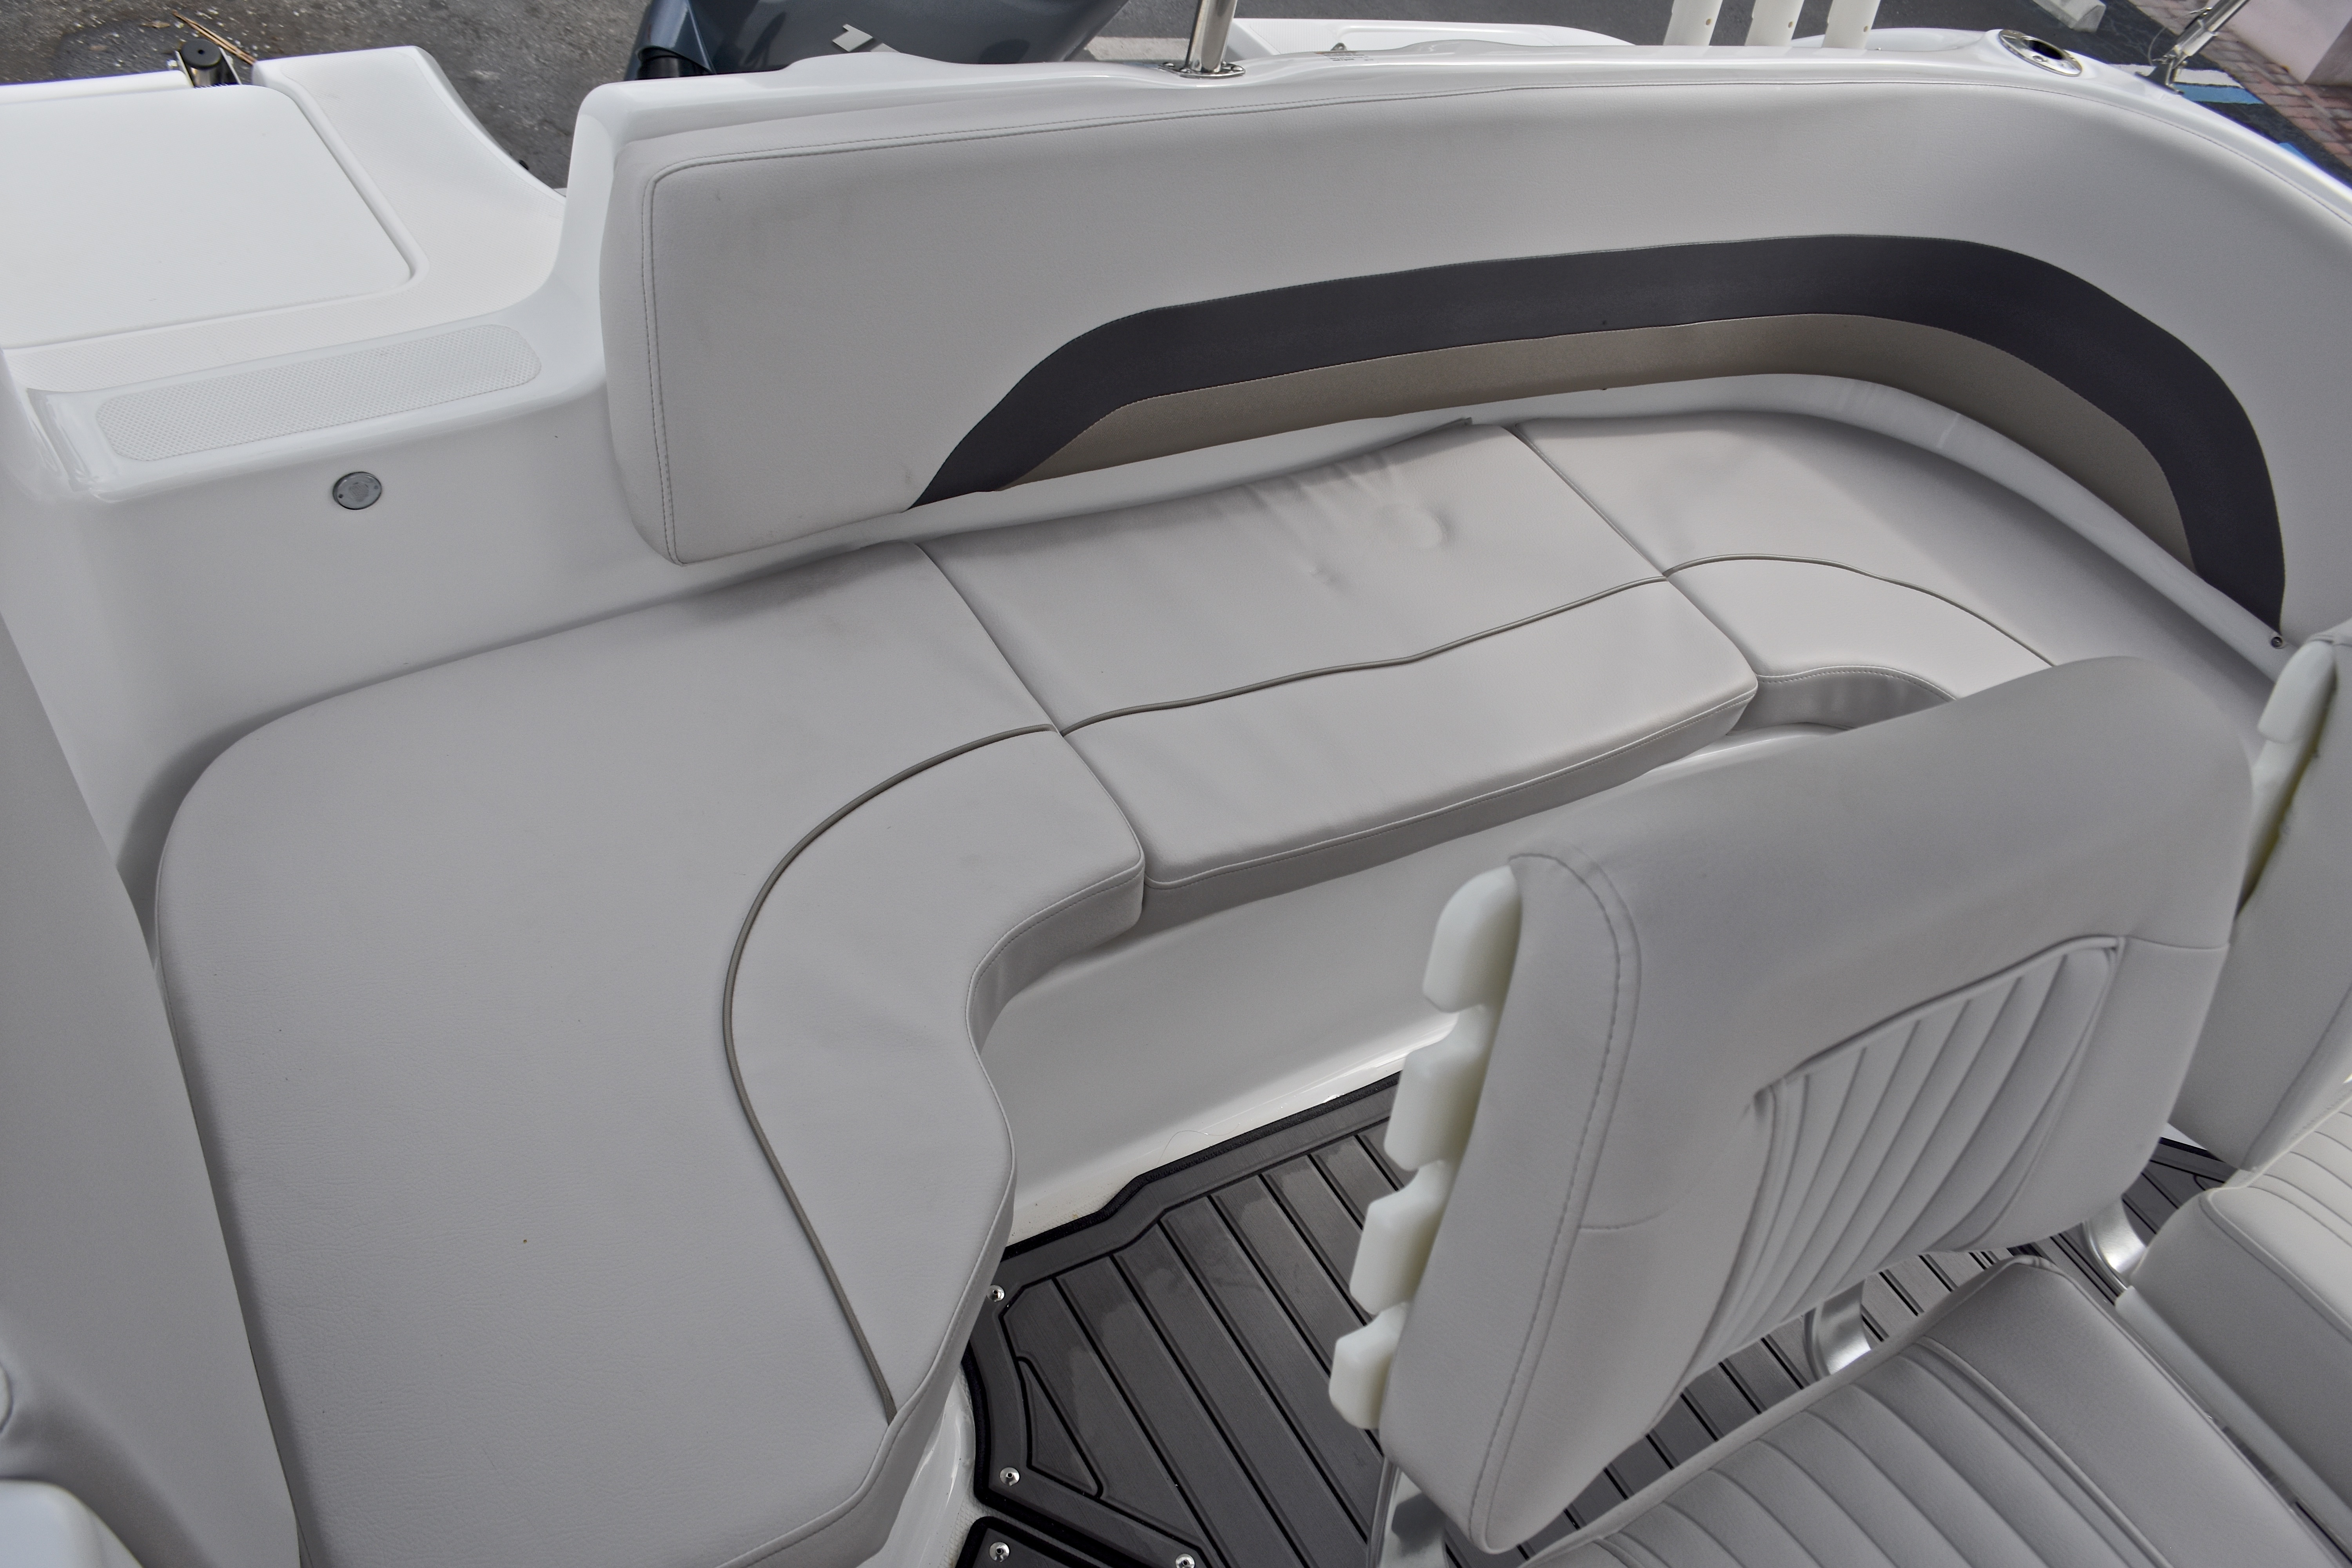 Thumbnail 11 for New 2017 Hurricane SunDeck Sport SS 211 OB boat for sale in West Palm Beach, FL